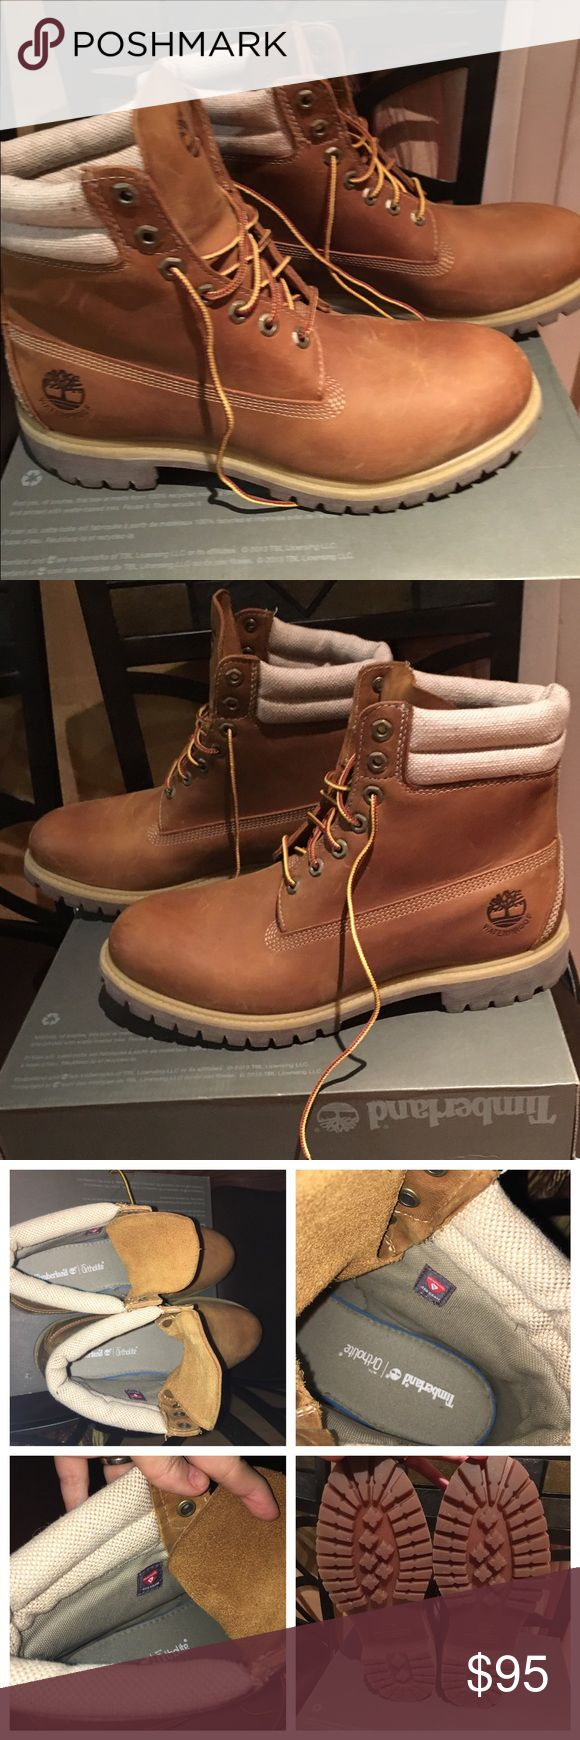 Timberland boots for men Timberland boots for men. Size 10.5. Gently worn some sign of wear please see pic. Item exactly as is in the pic. The top of the box is missing. Timberland Shoes Boots